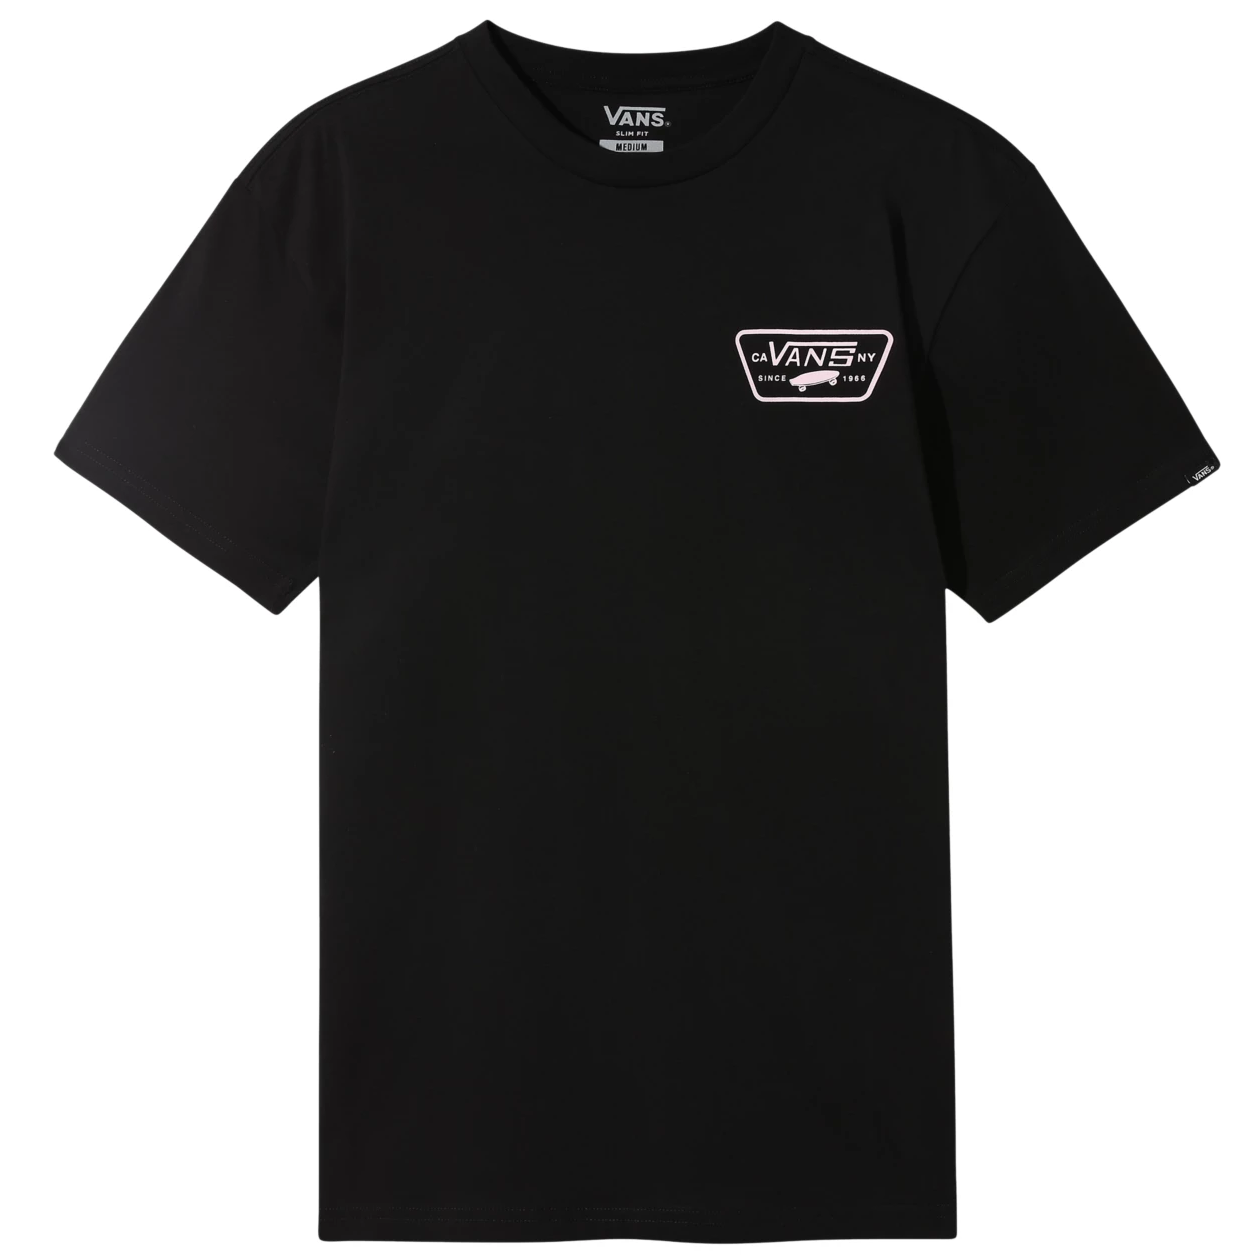 Full Patch Back Tee Black/ Vans Cool Pink